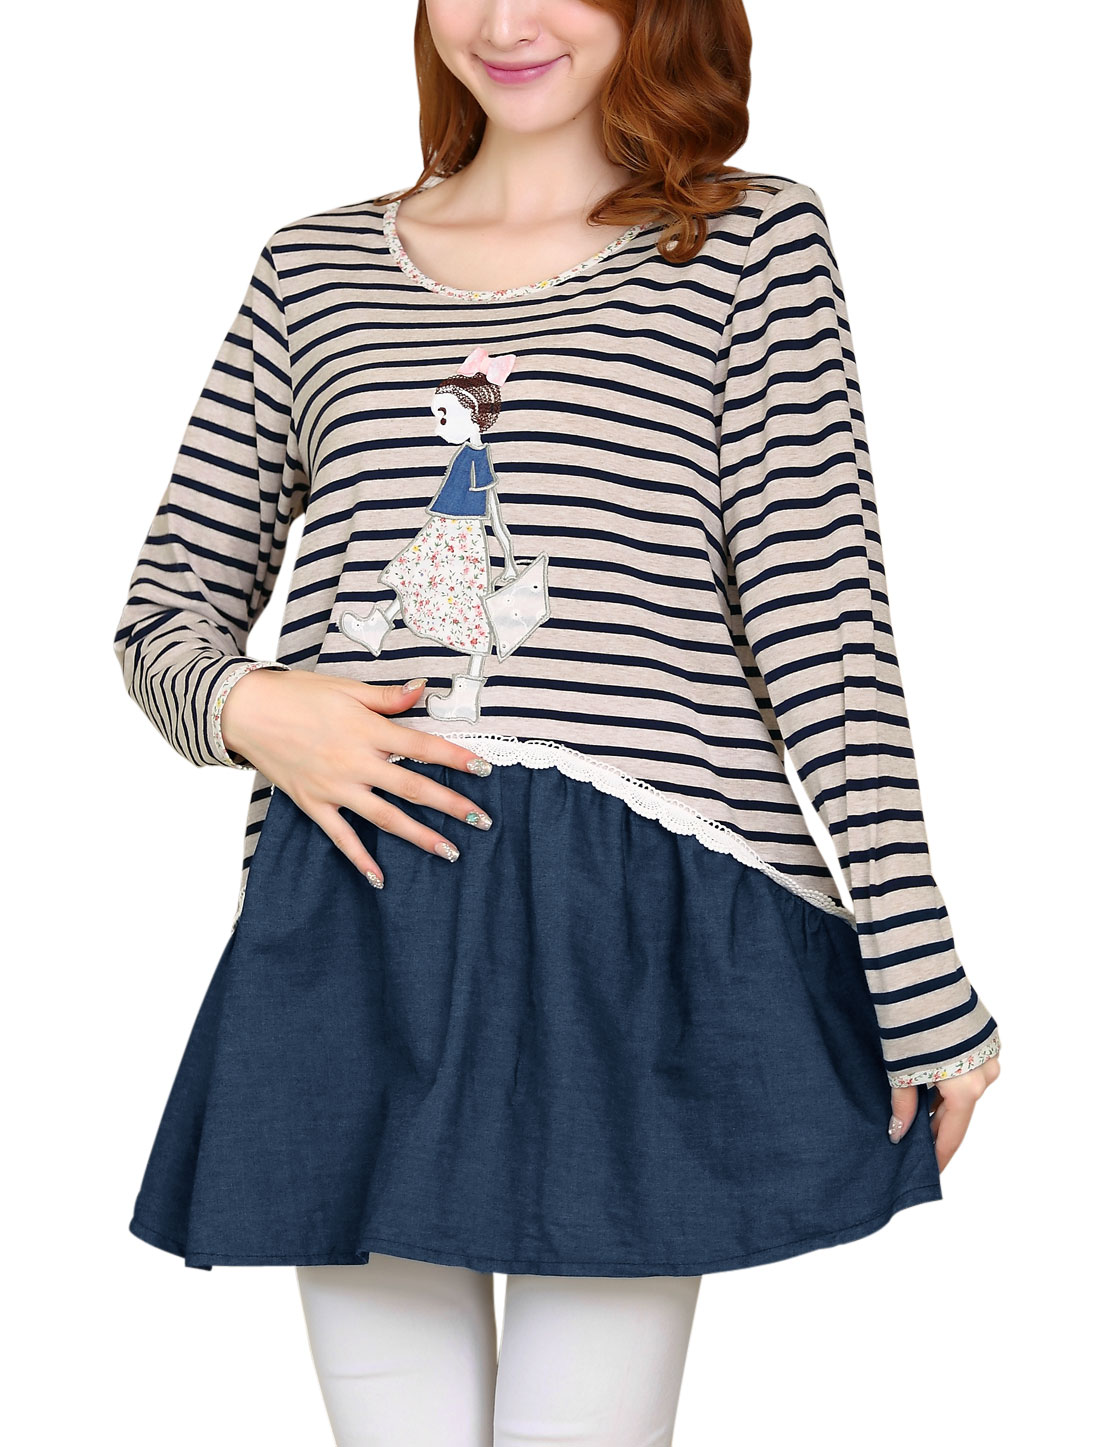 Maternity Stripes Cartoon Applique Pattern Spliced Tunic Top Beige Navy Blue M